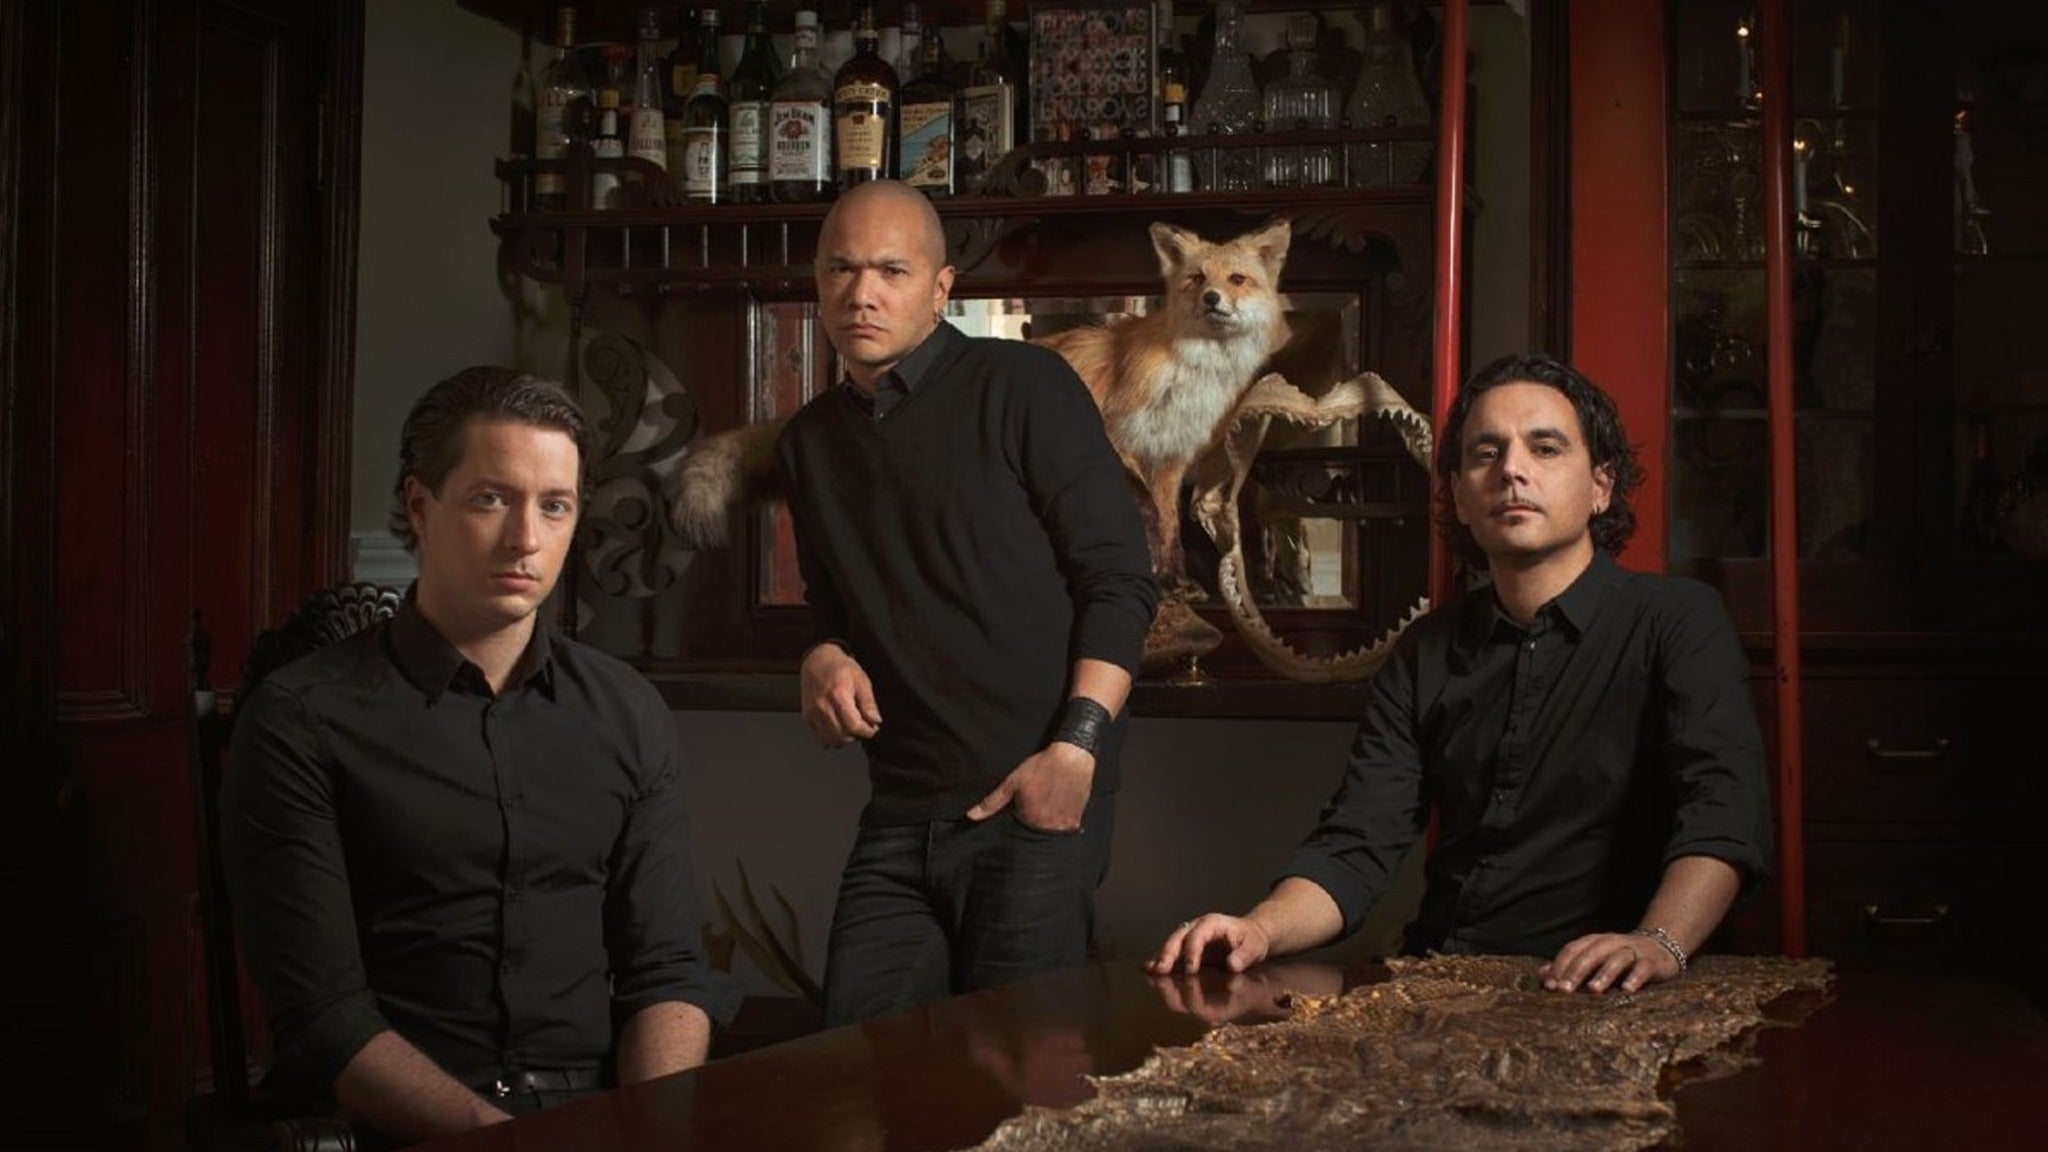 Danko Jones, Junkyard, Monodelux at Gallagher's Pub HB